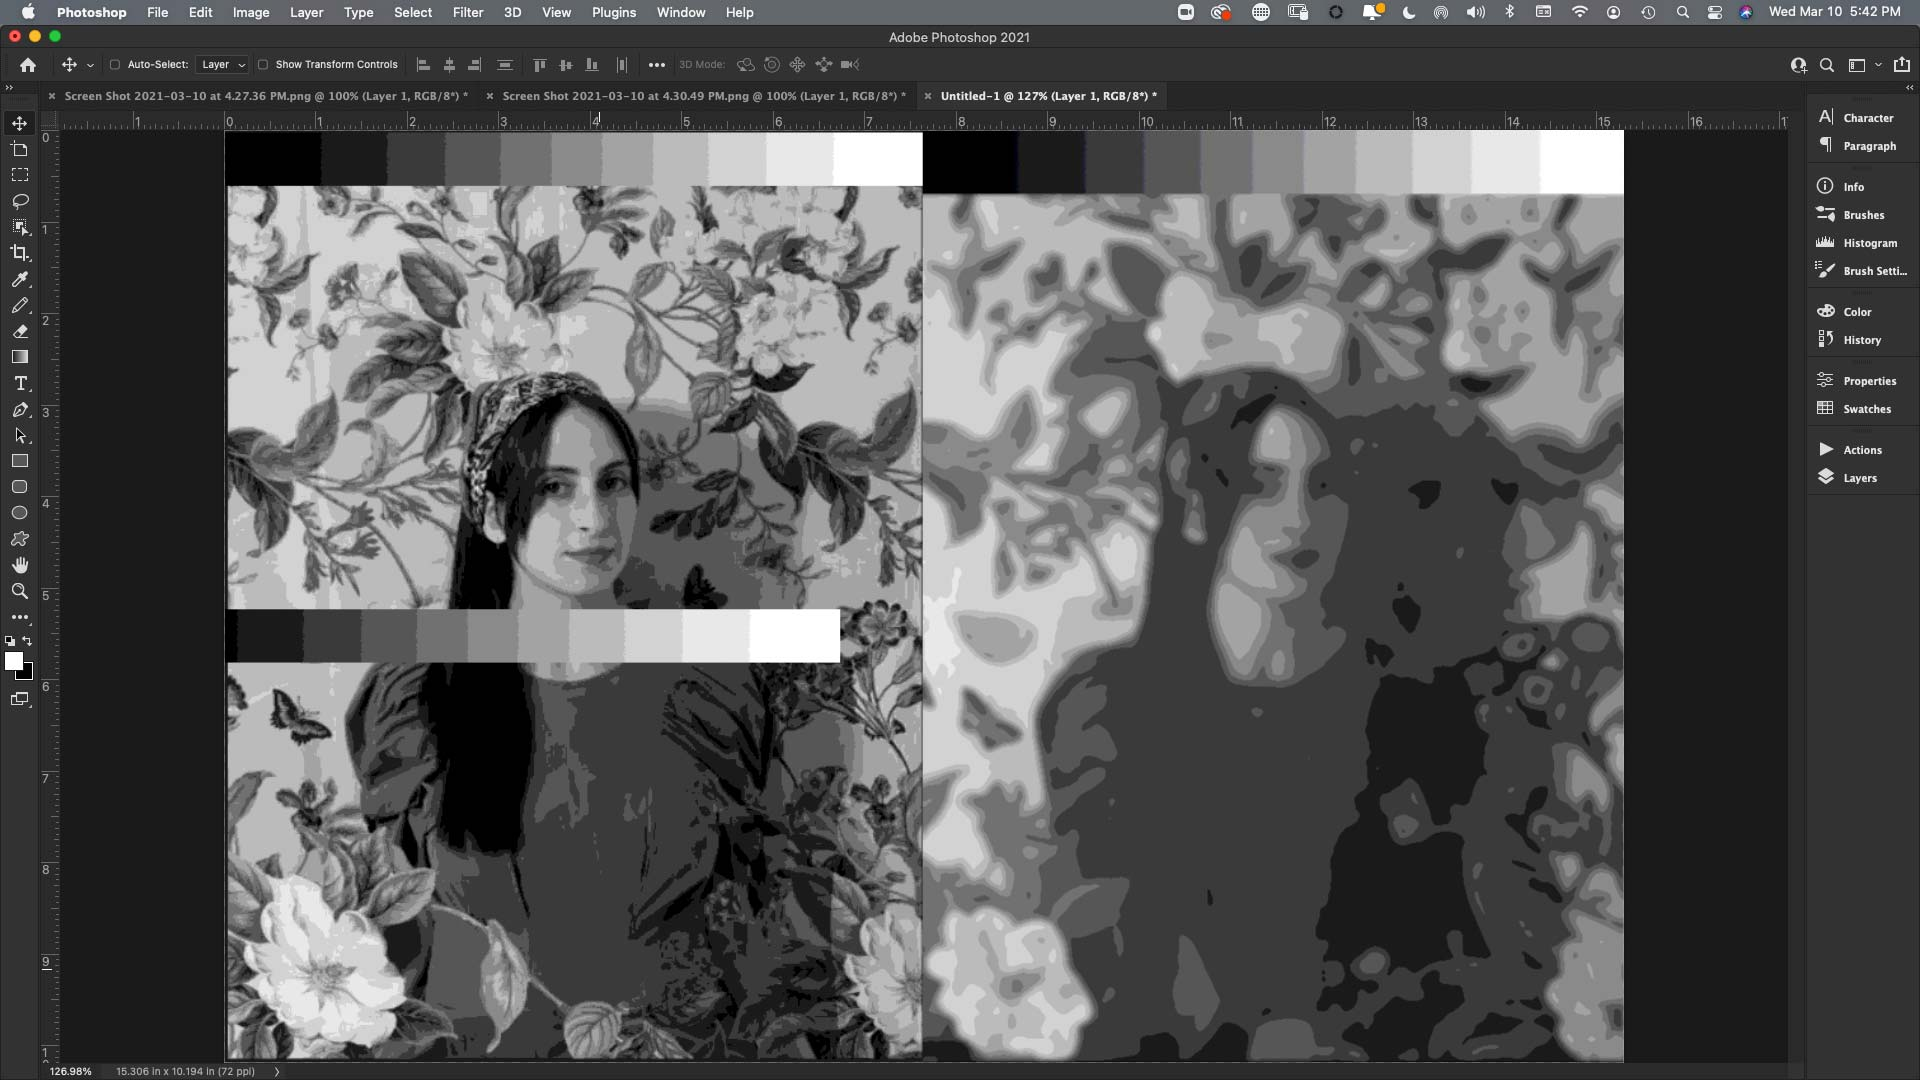 Zoom screen shot of Marvin Mattelson photoshop painting analysis